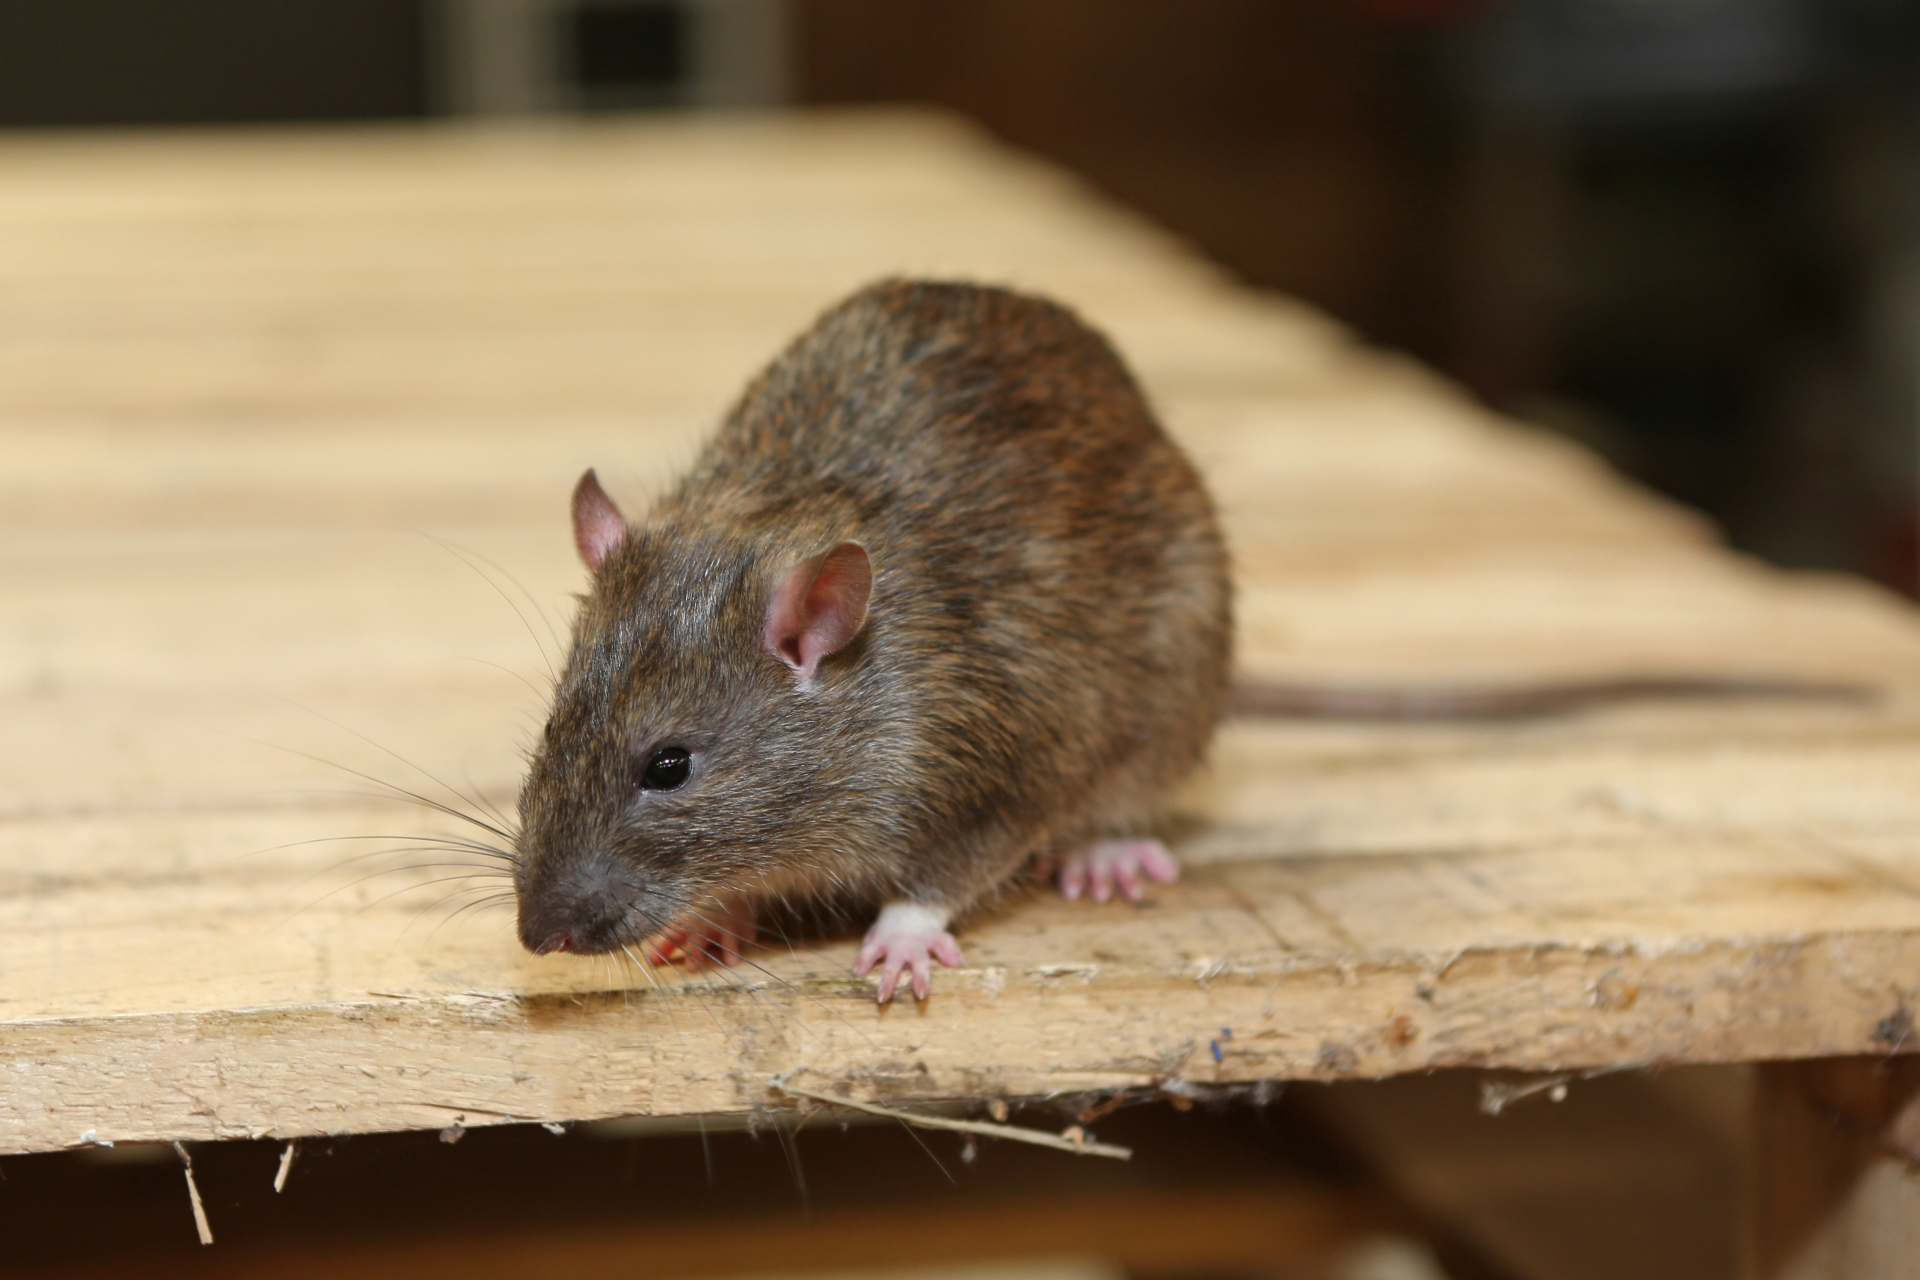 Rat extermination, Pest Control in Tufnell Park, N19. Call Now 020 8166 9746